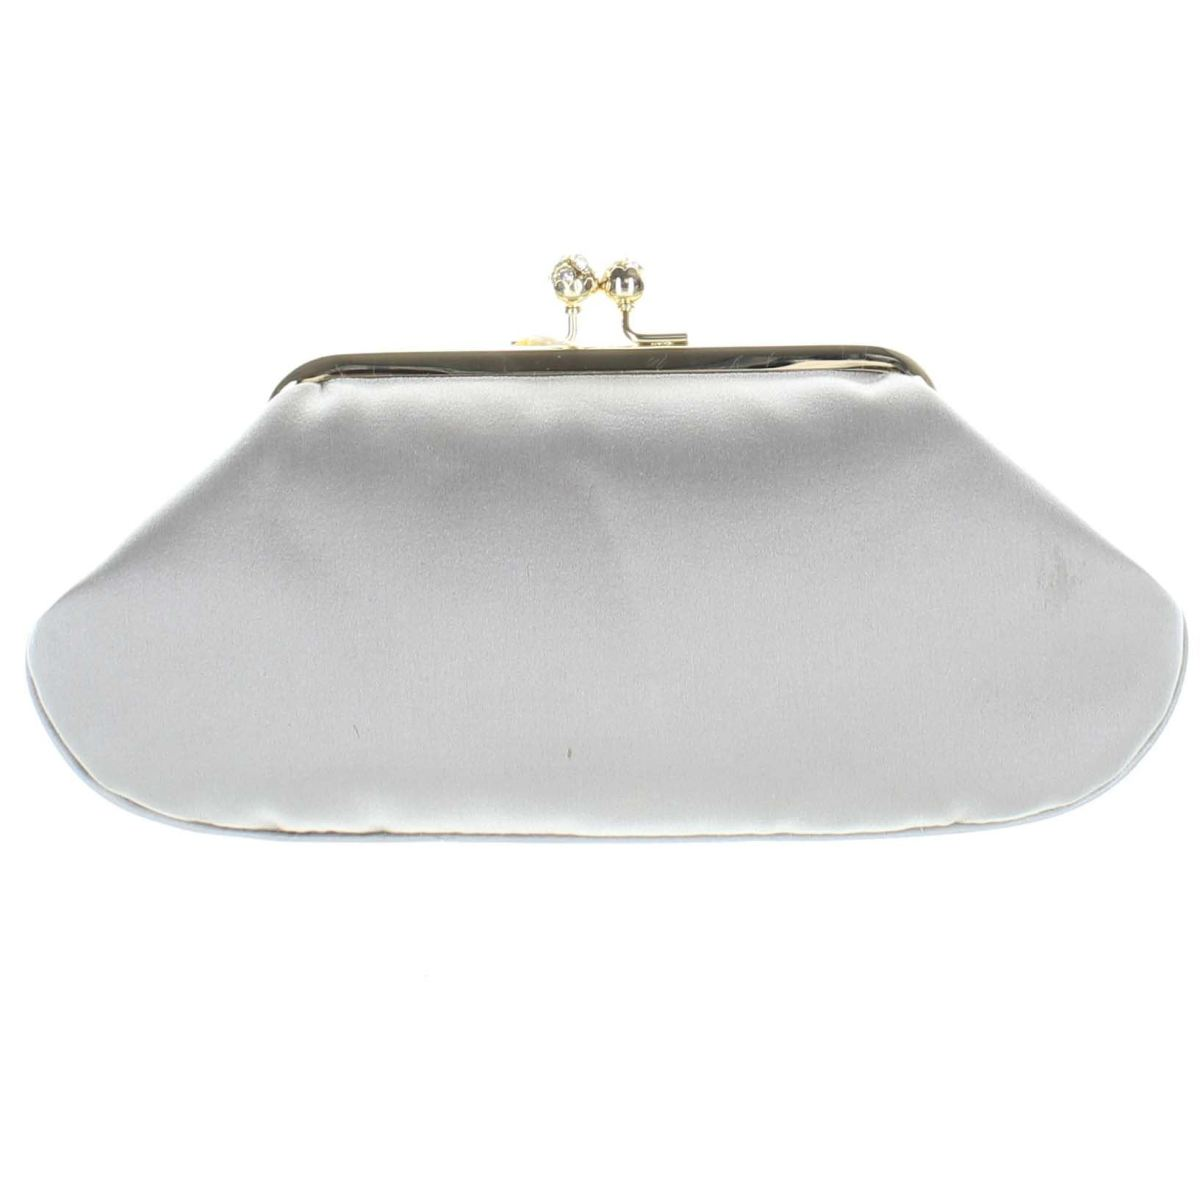 Anya Hindmarch 'Maud' clutch